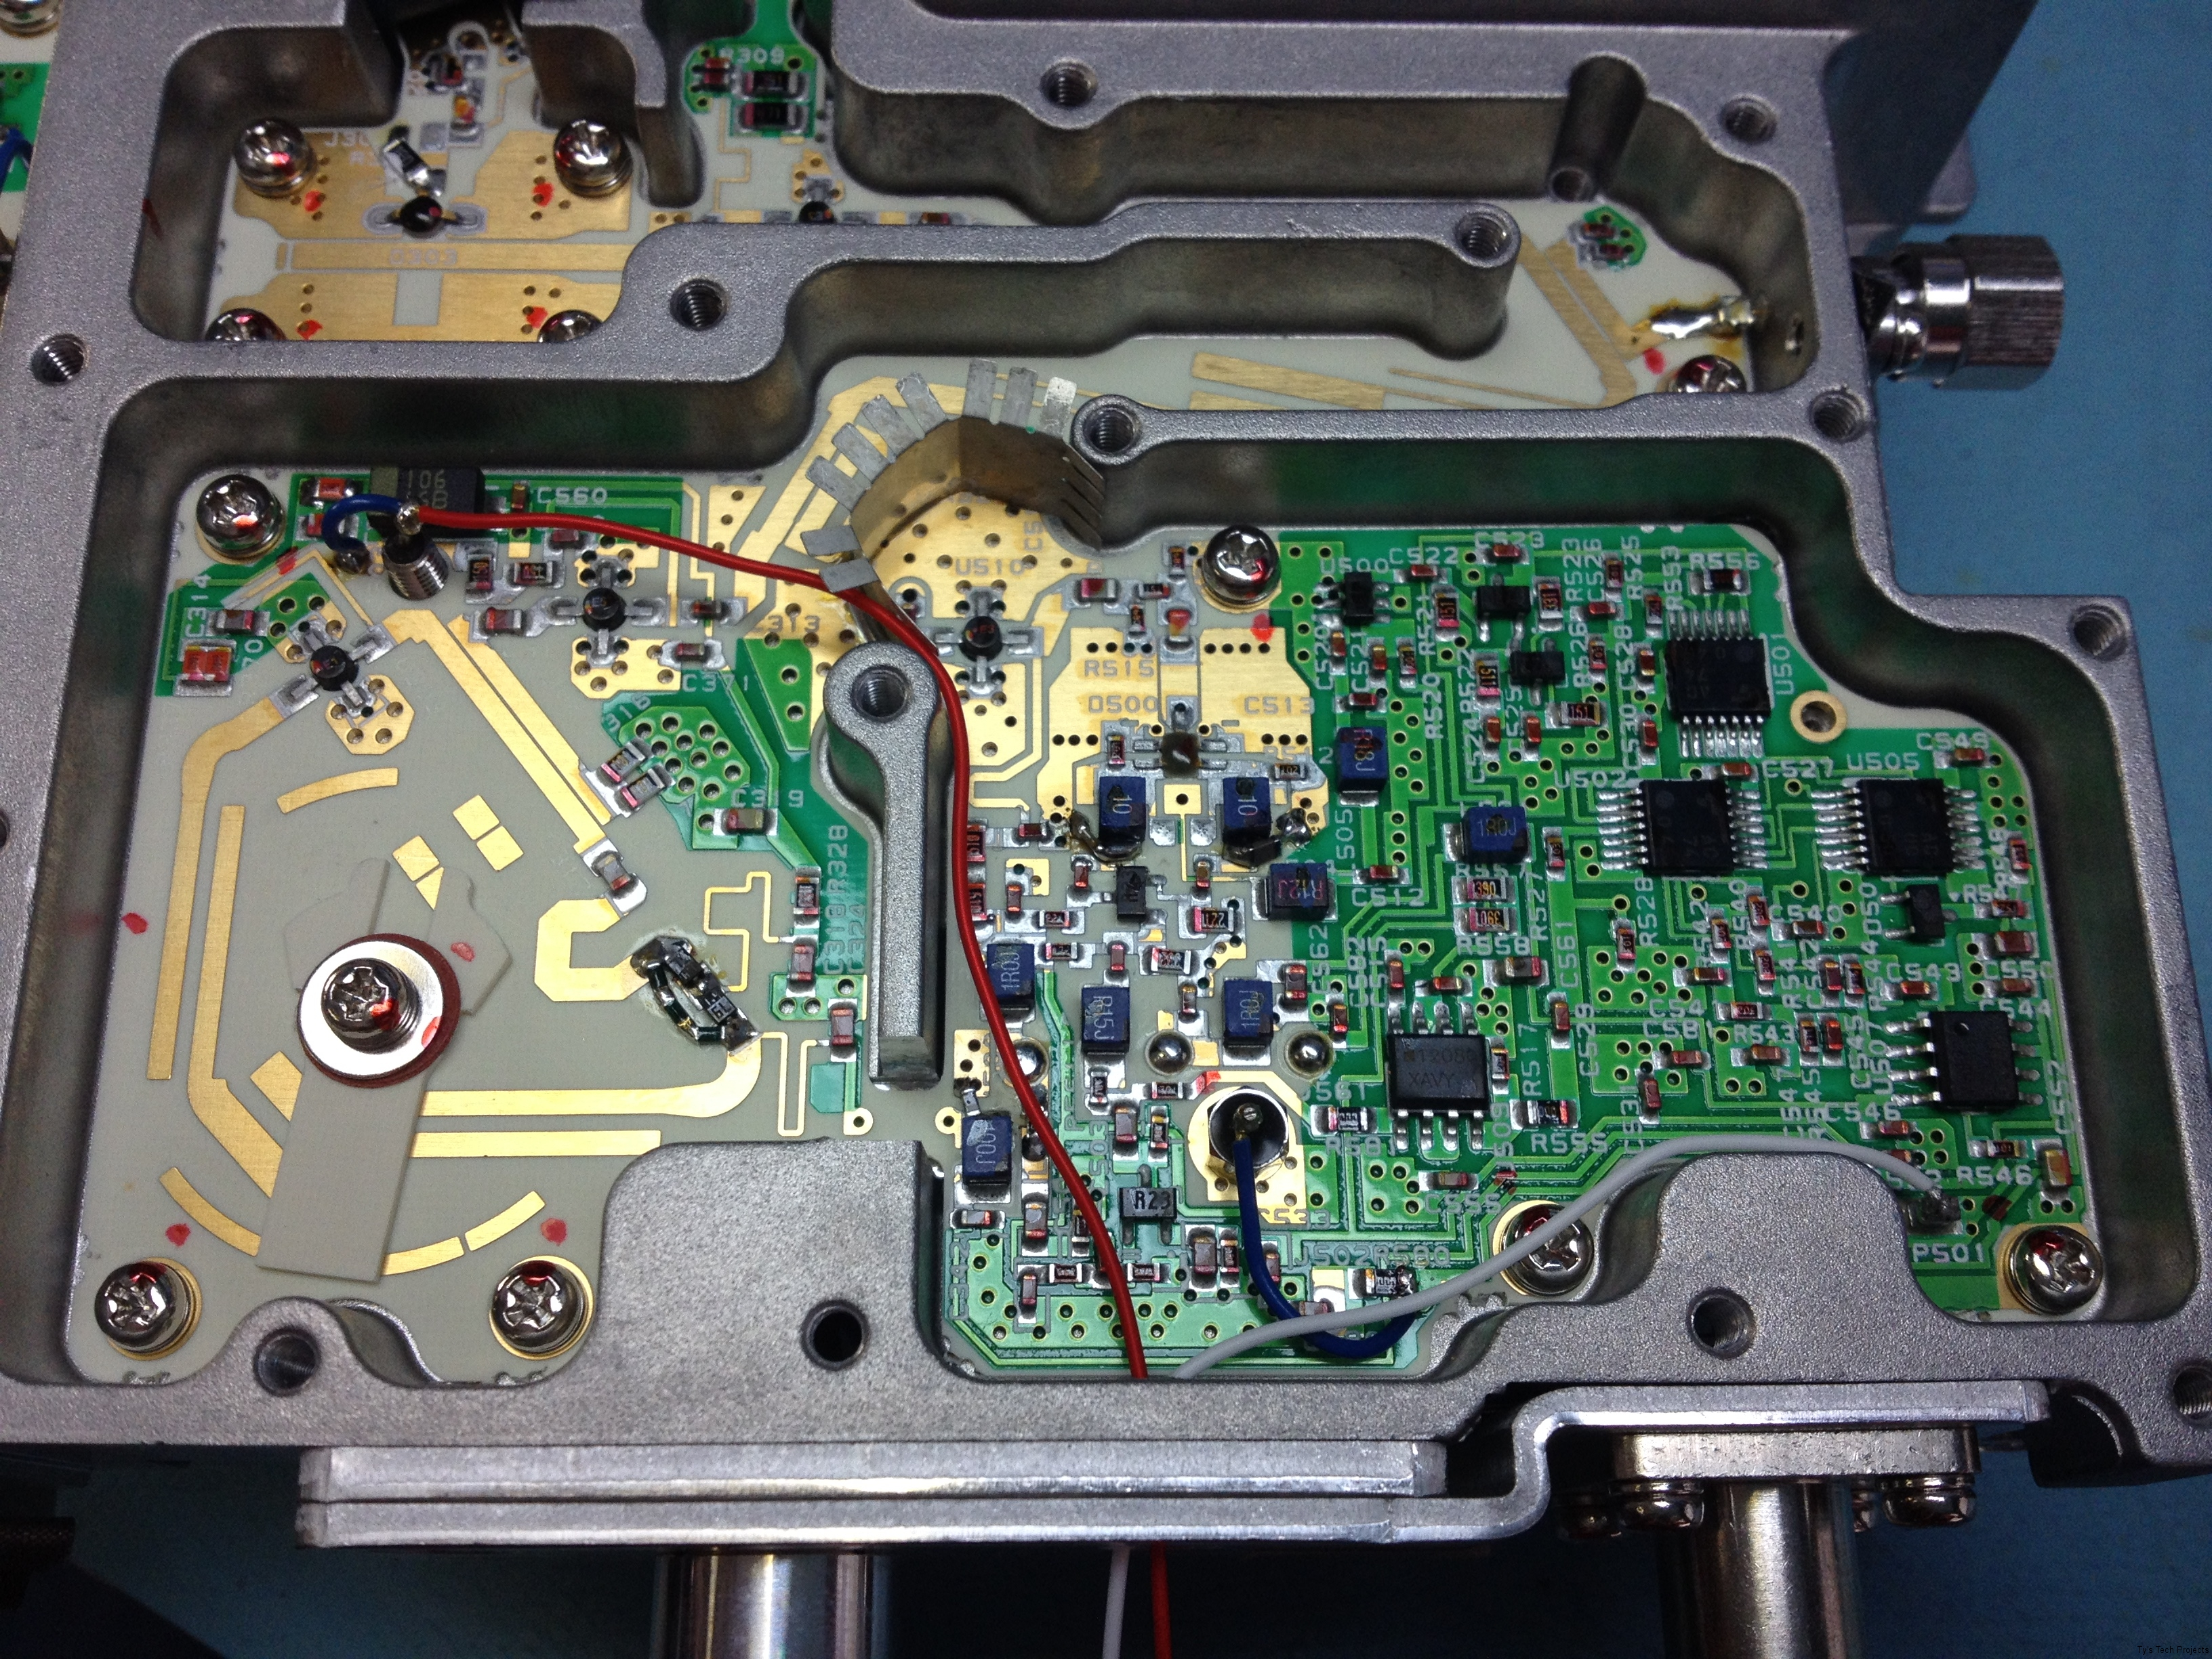 Overview of the test wires soldered in place